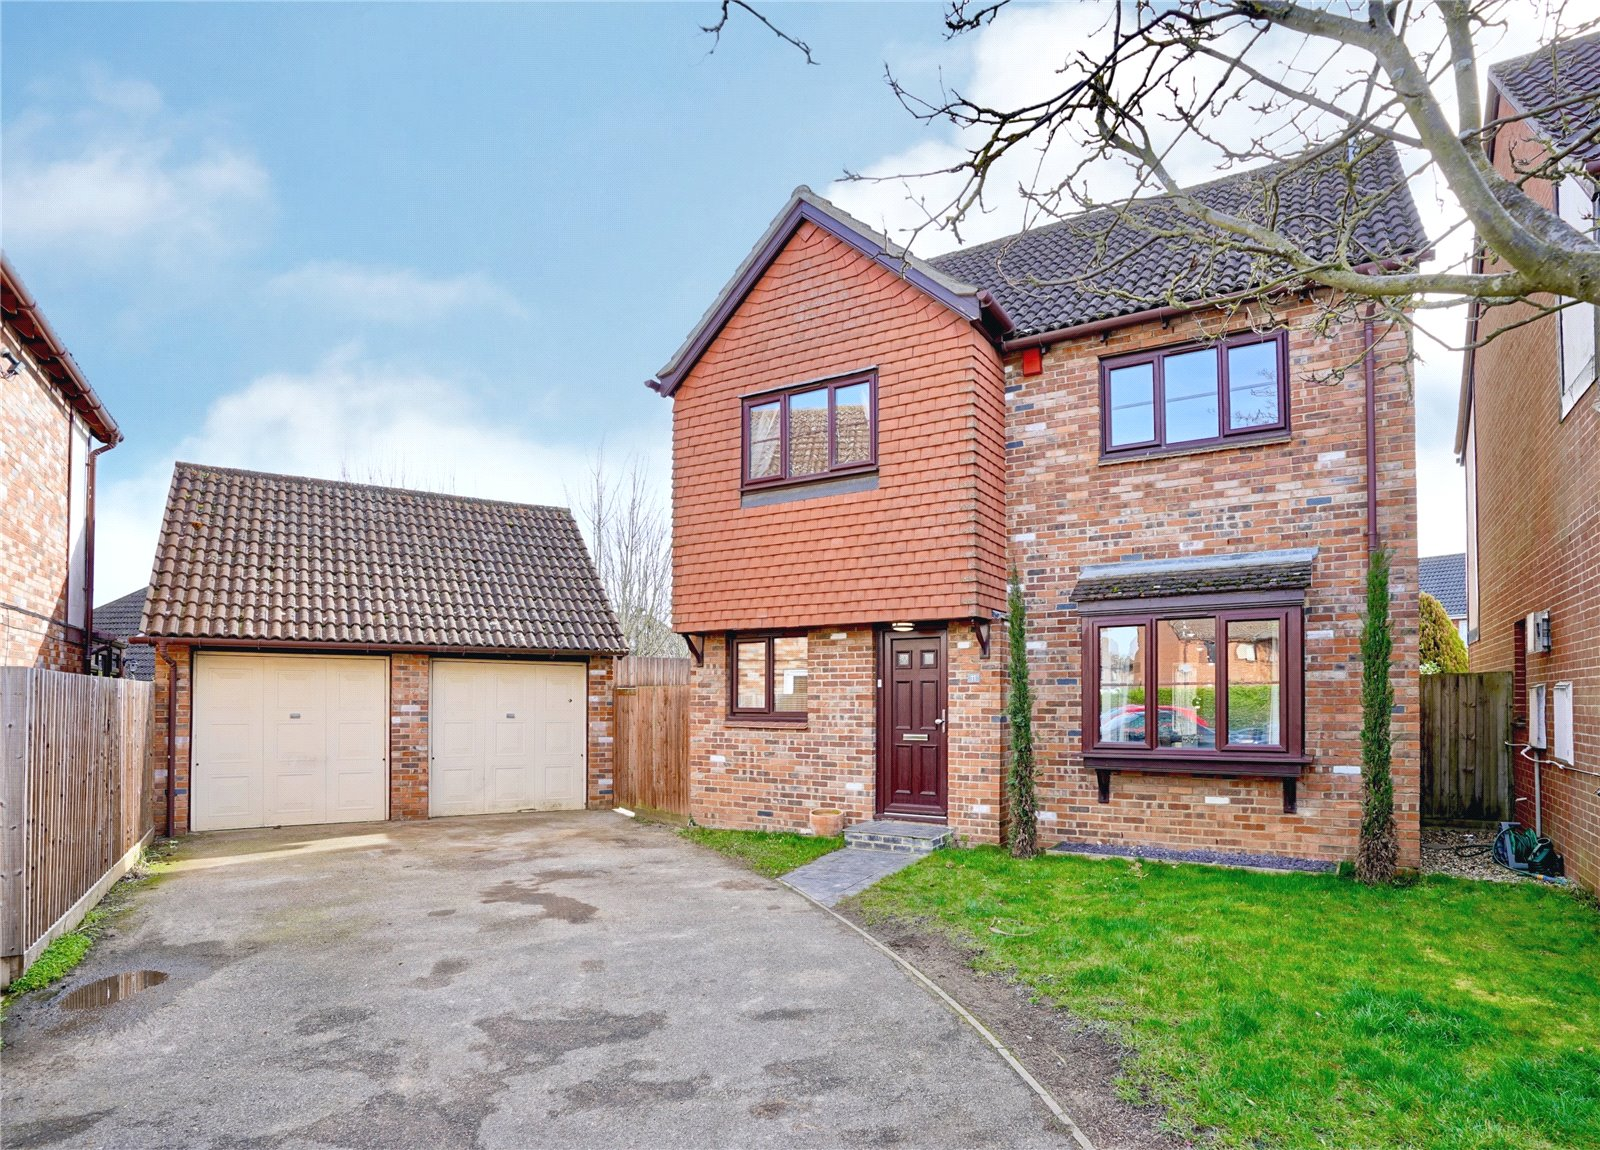 4 bed house for sale in Potton, SG19 2SE, SG19